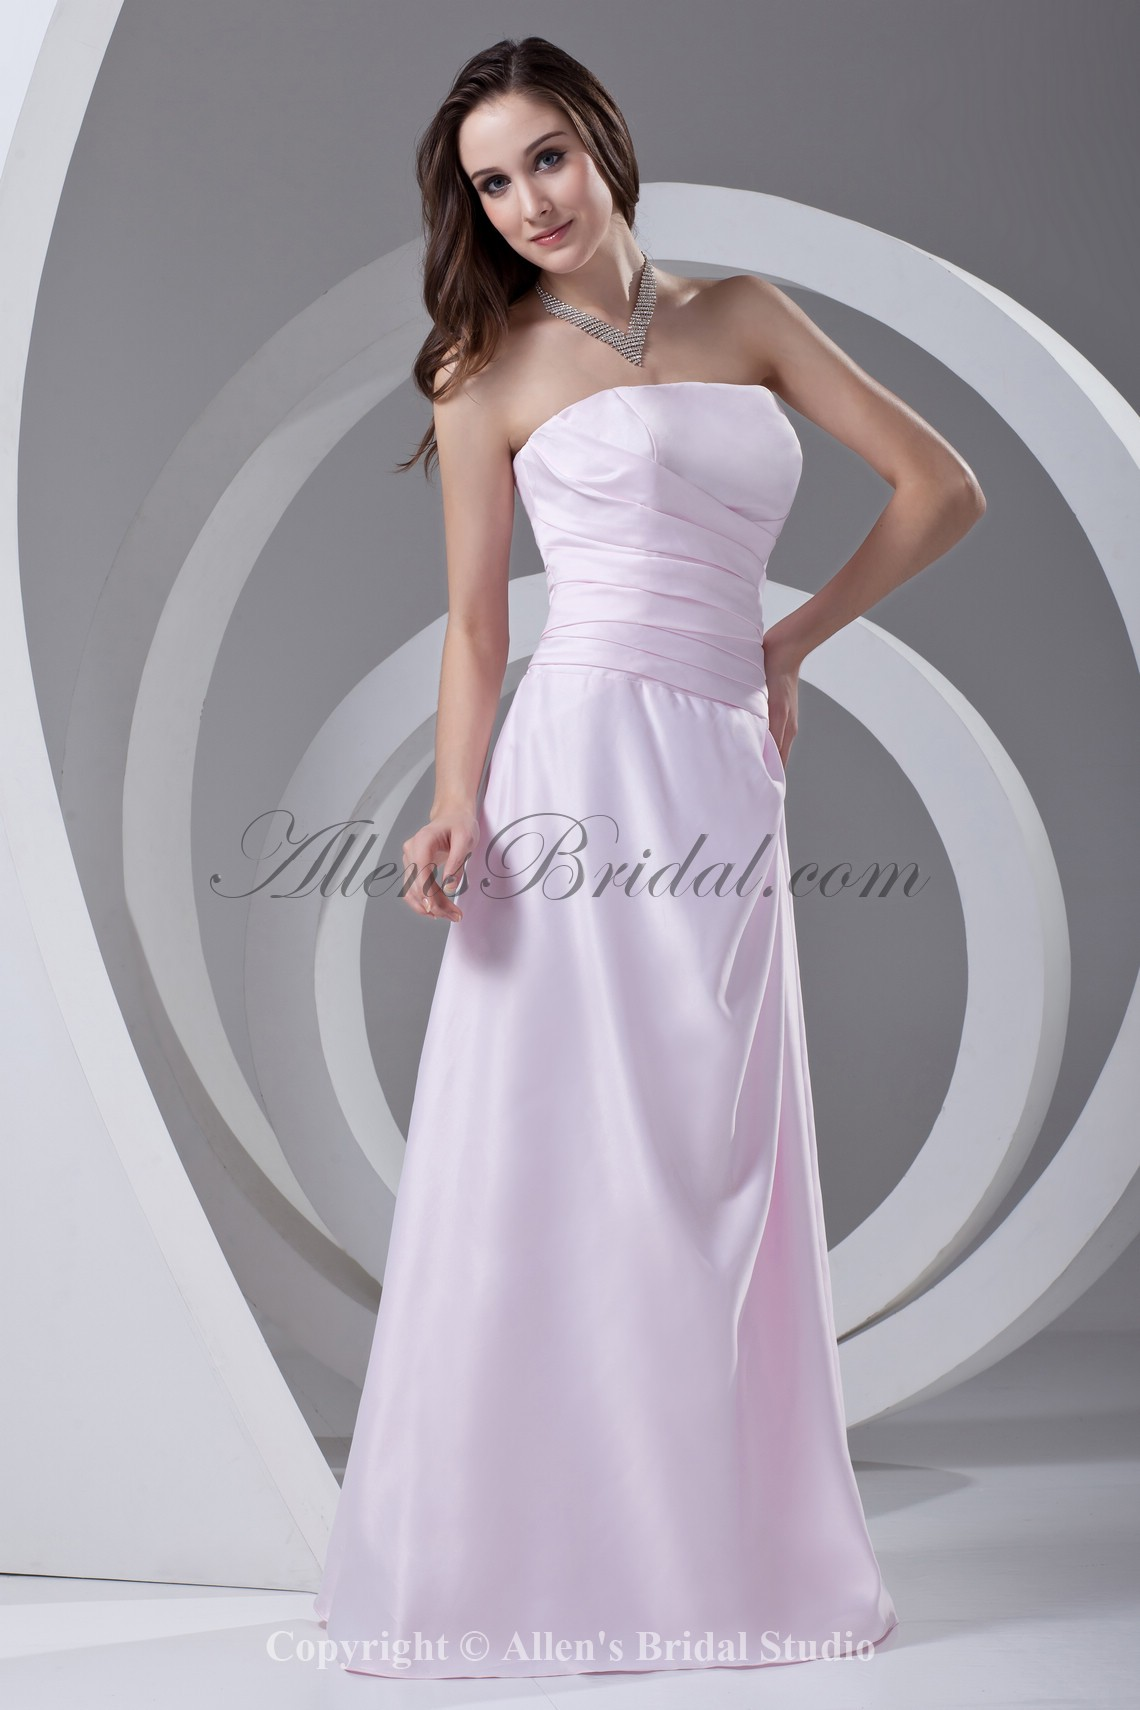 /356-2848/satin-strapless-neckline-a-line-floor-length-directionally-ruched-prom-dress.jpg